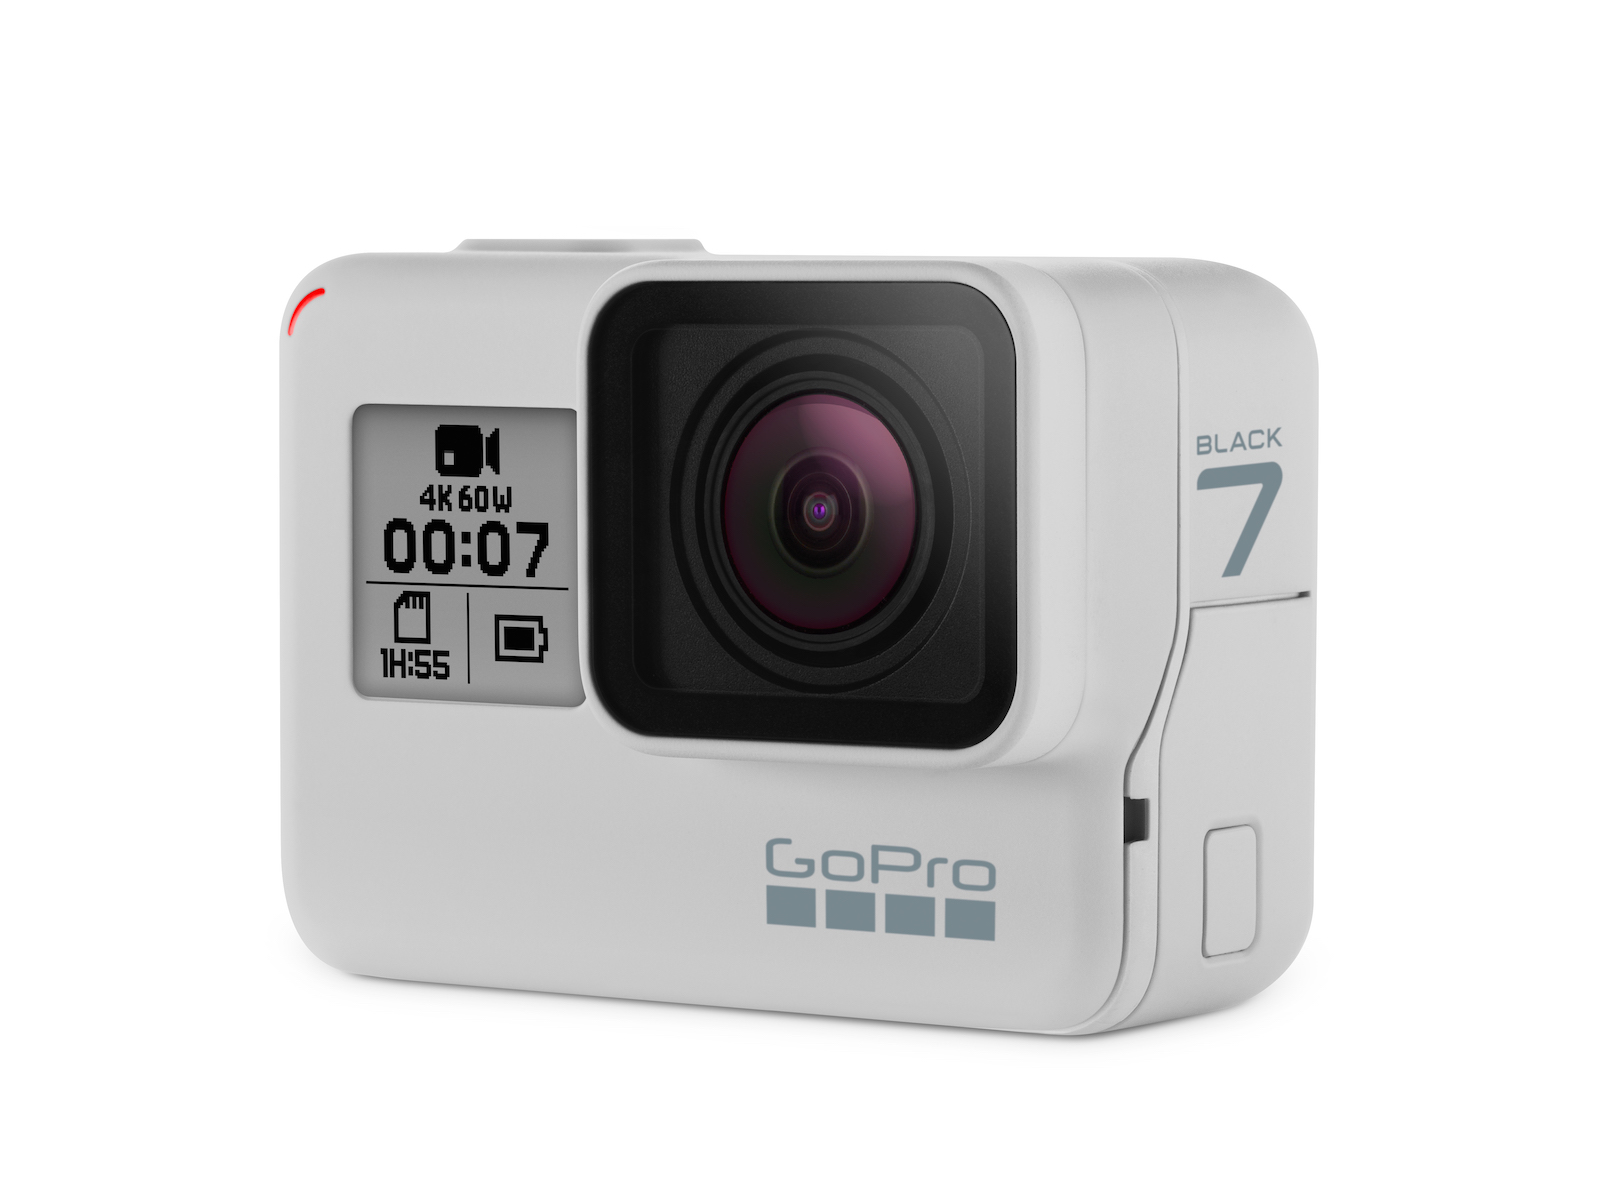 HERO7-Black-Limited-EditionProduct-Image-1.jpg